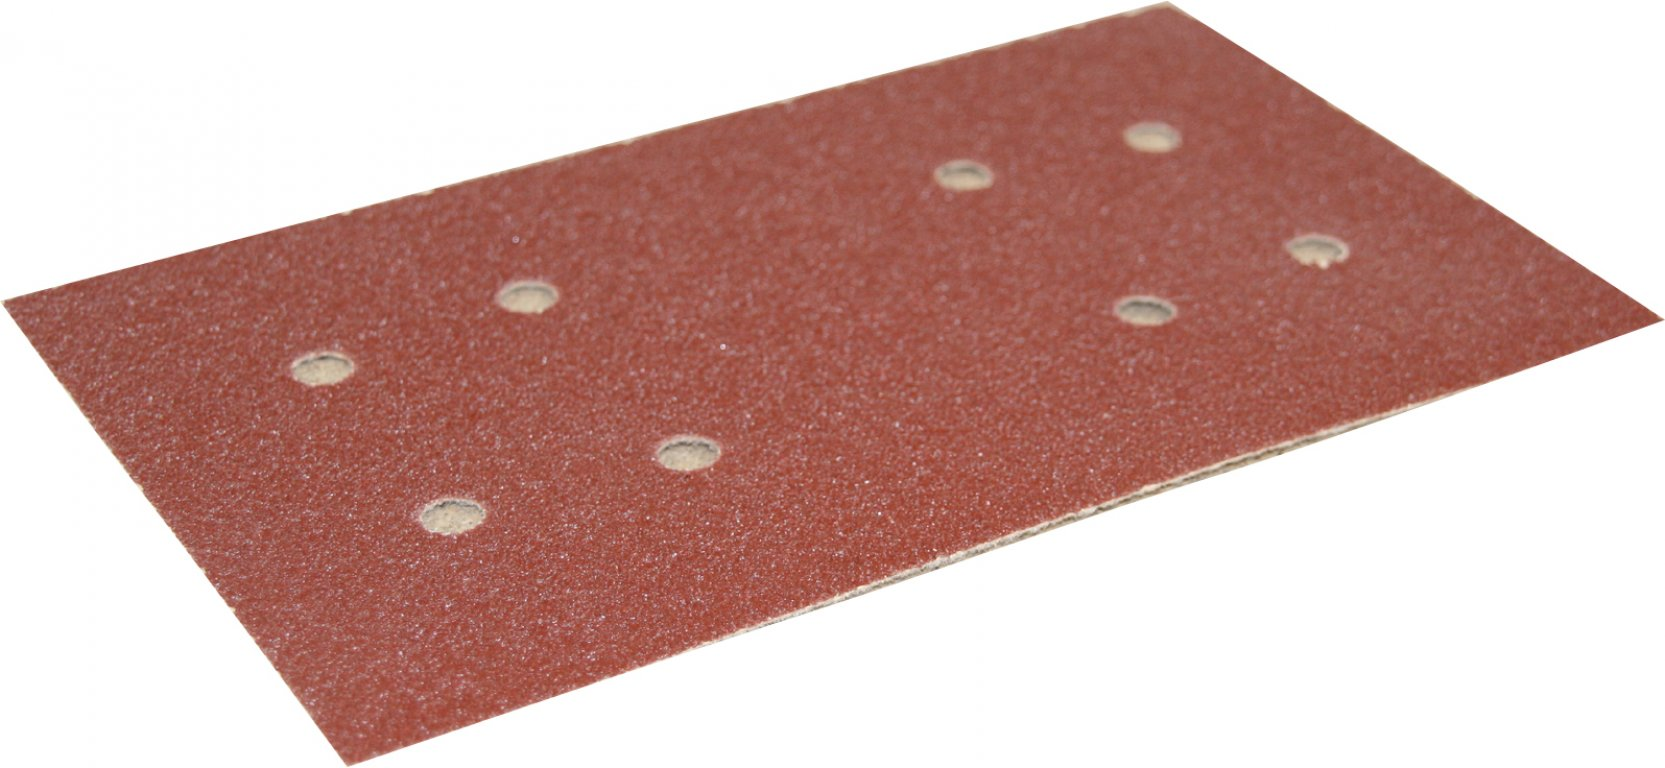 Sandpaper, perforated